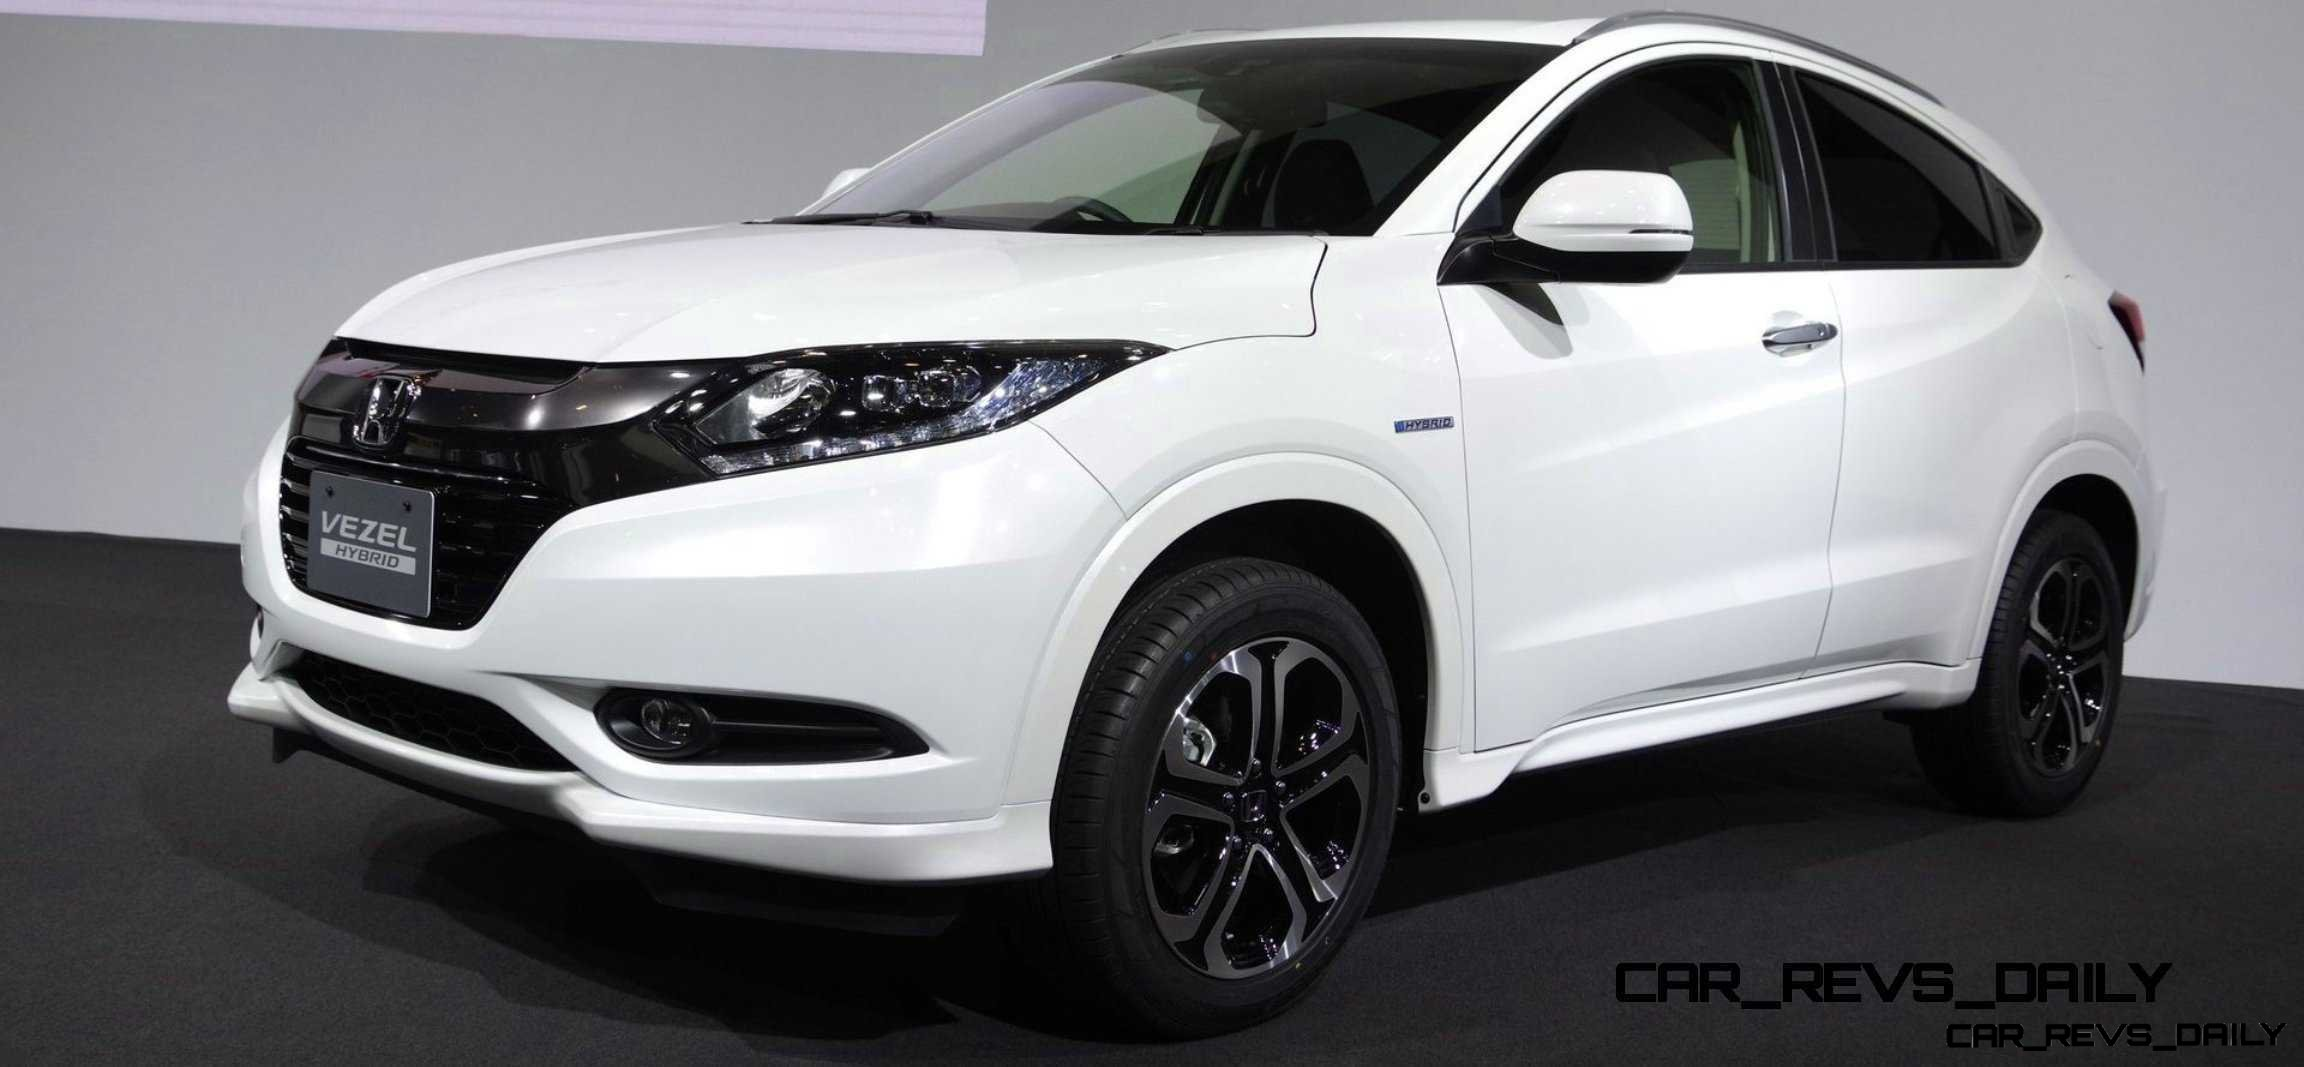 Cool! 2015 Honda Vezel Hybrid Previews Spring 2014 Civic CUV6